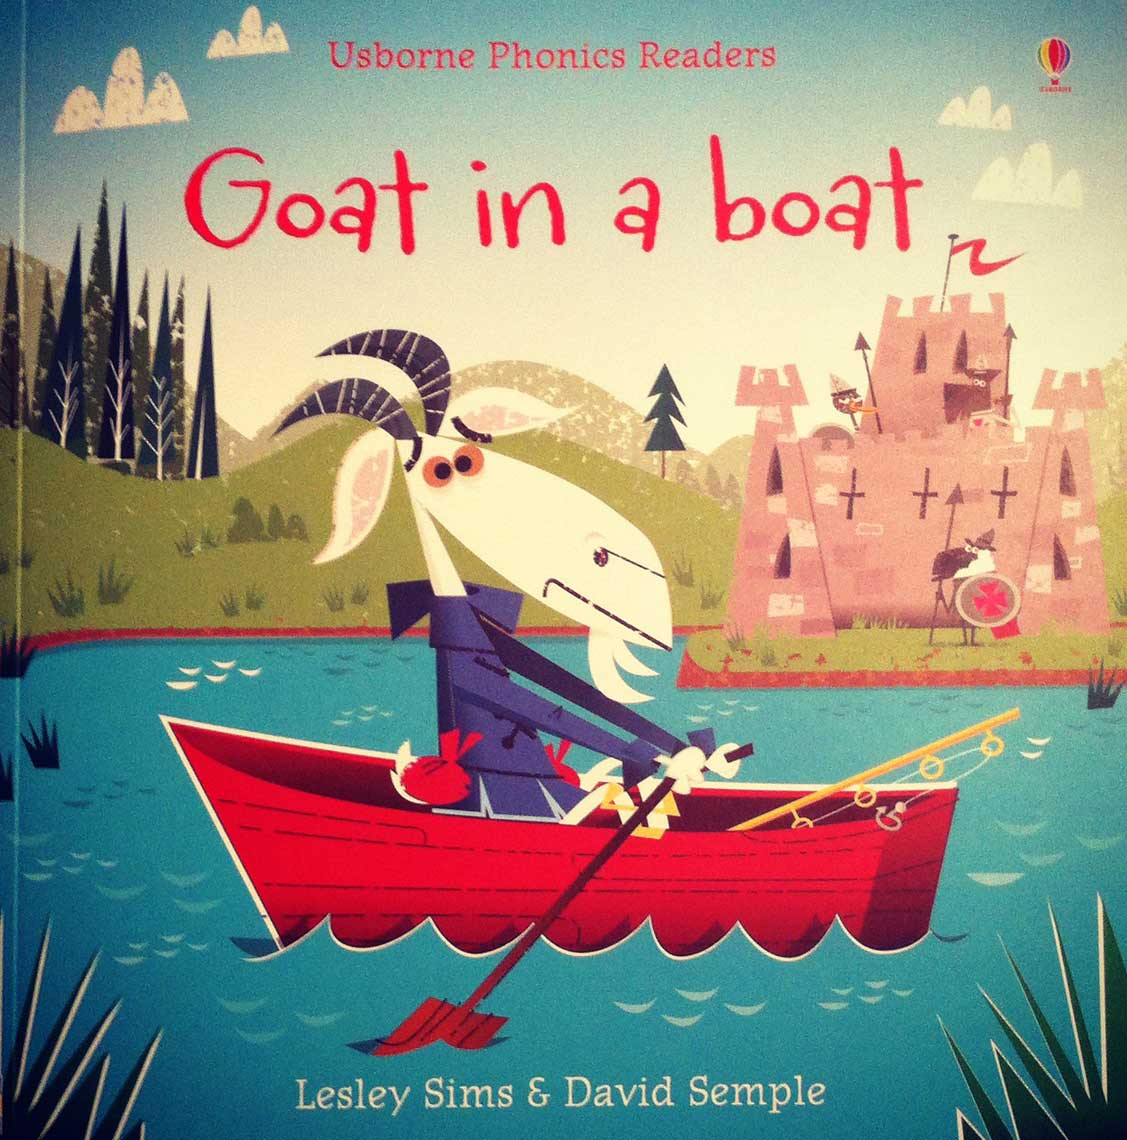 illustration-Cartoons & Characters_Usborne Publishing Goat in a Boat-David Semple